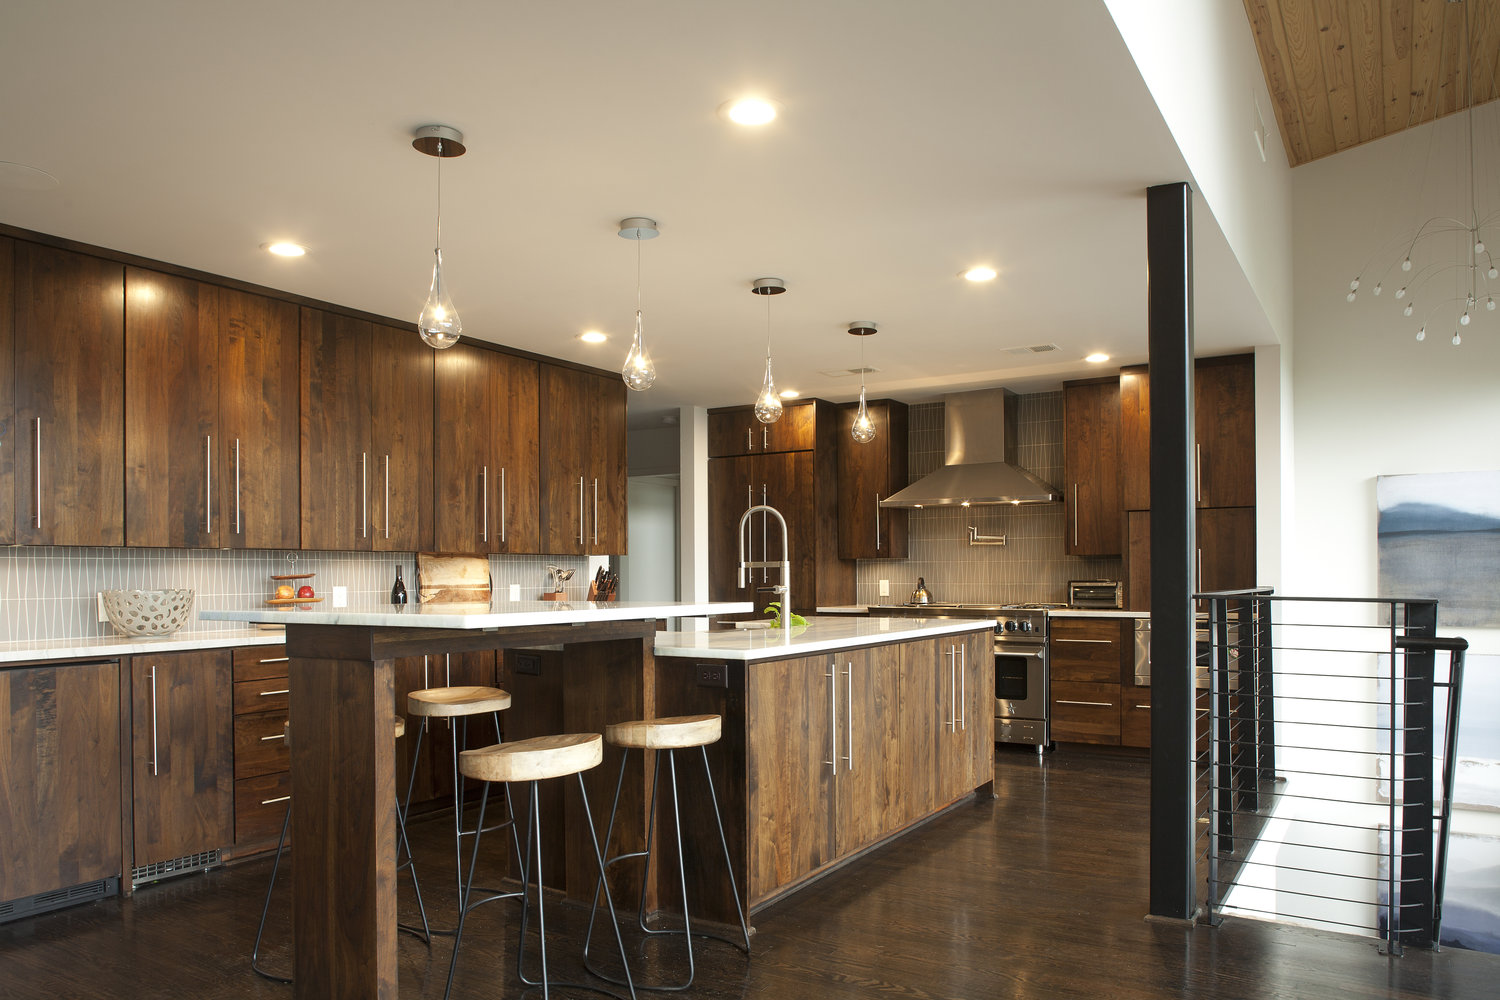 irwin brothers remodeling company